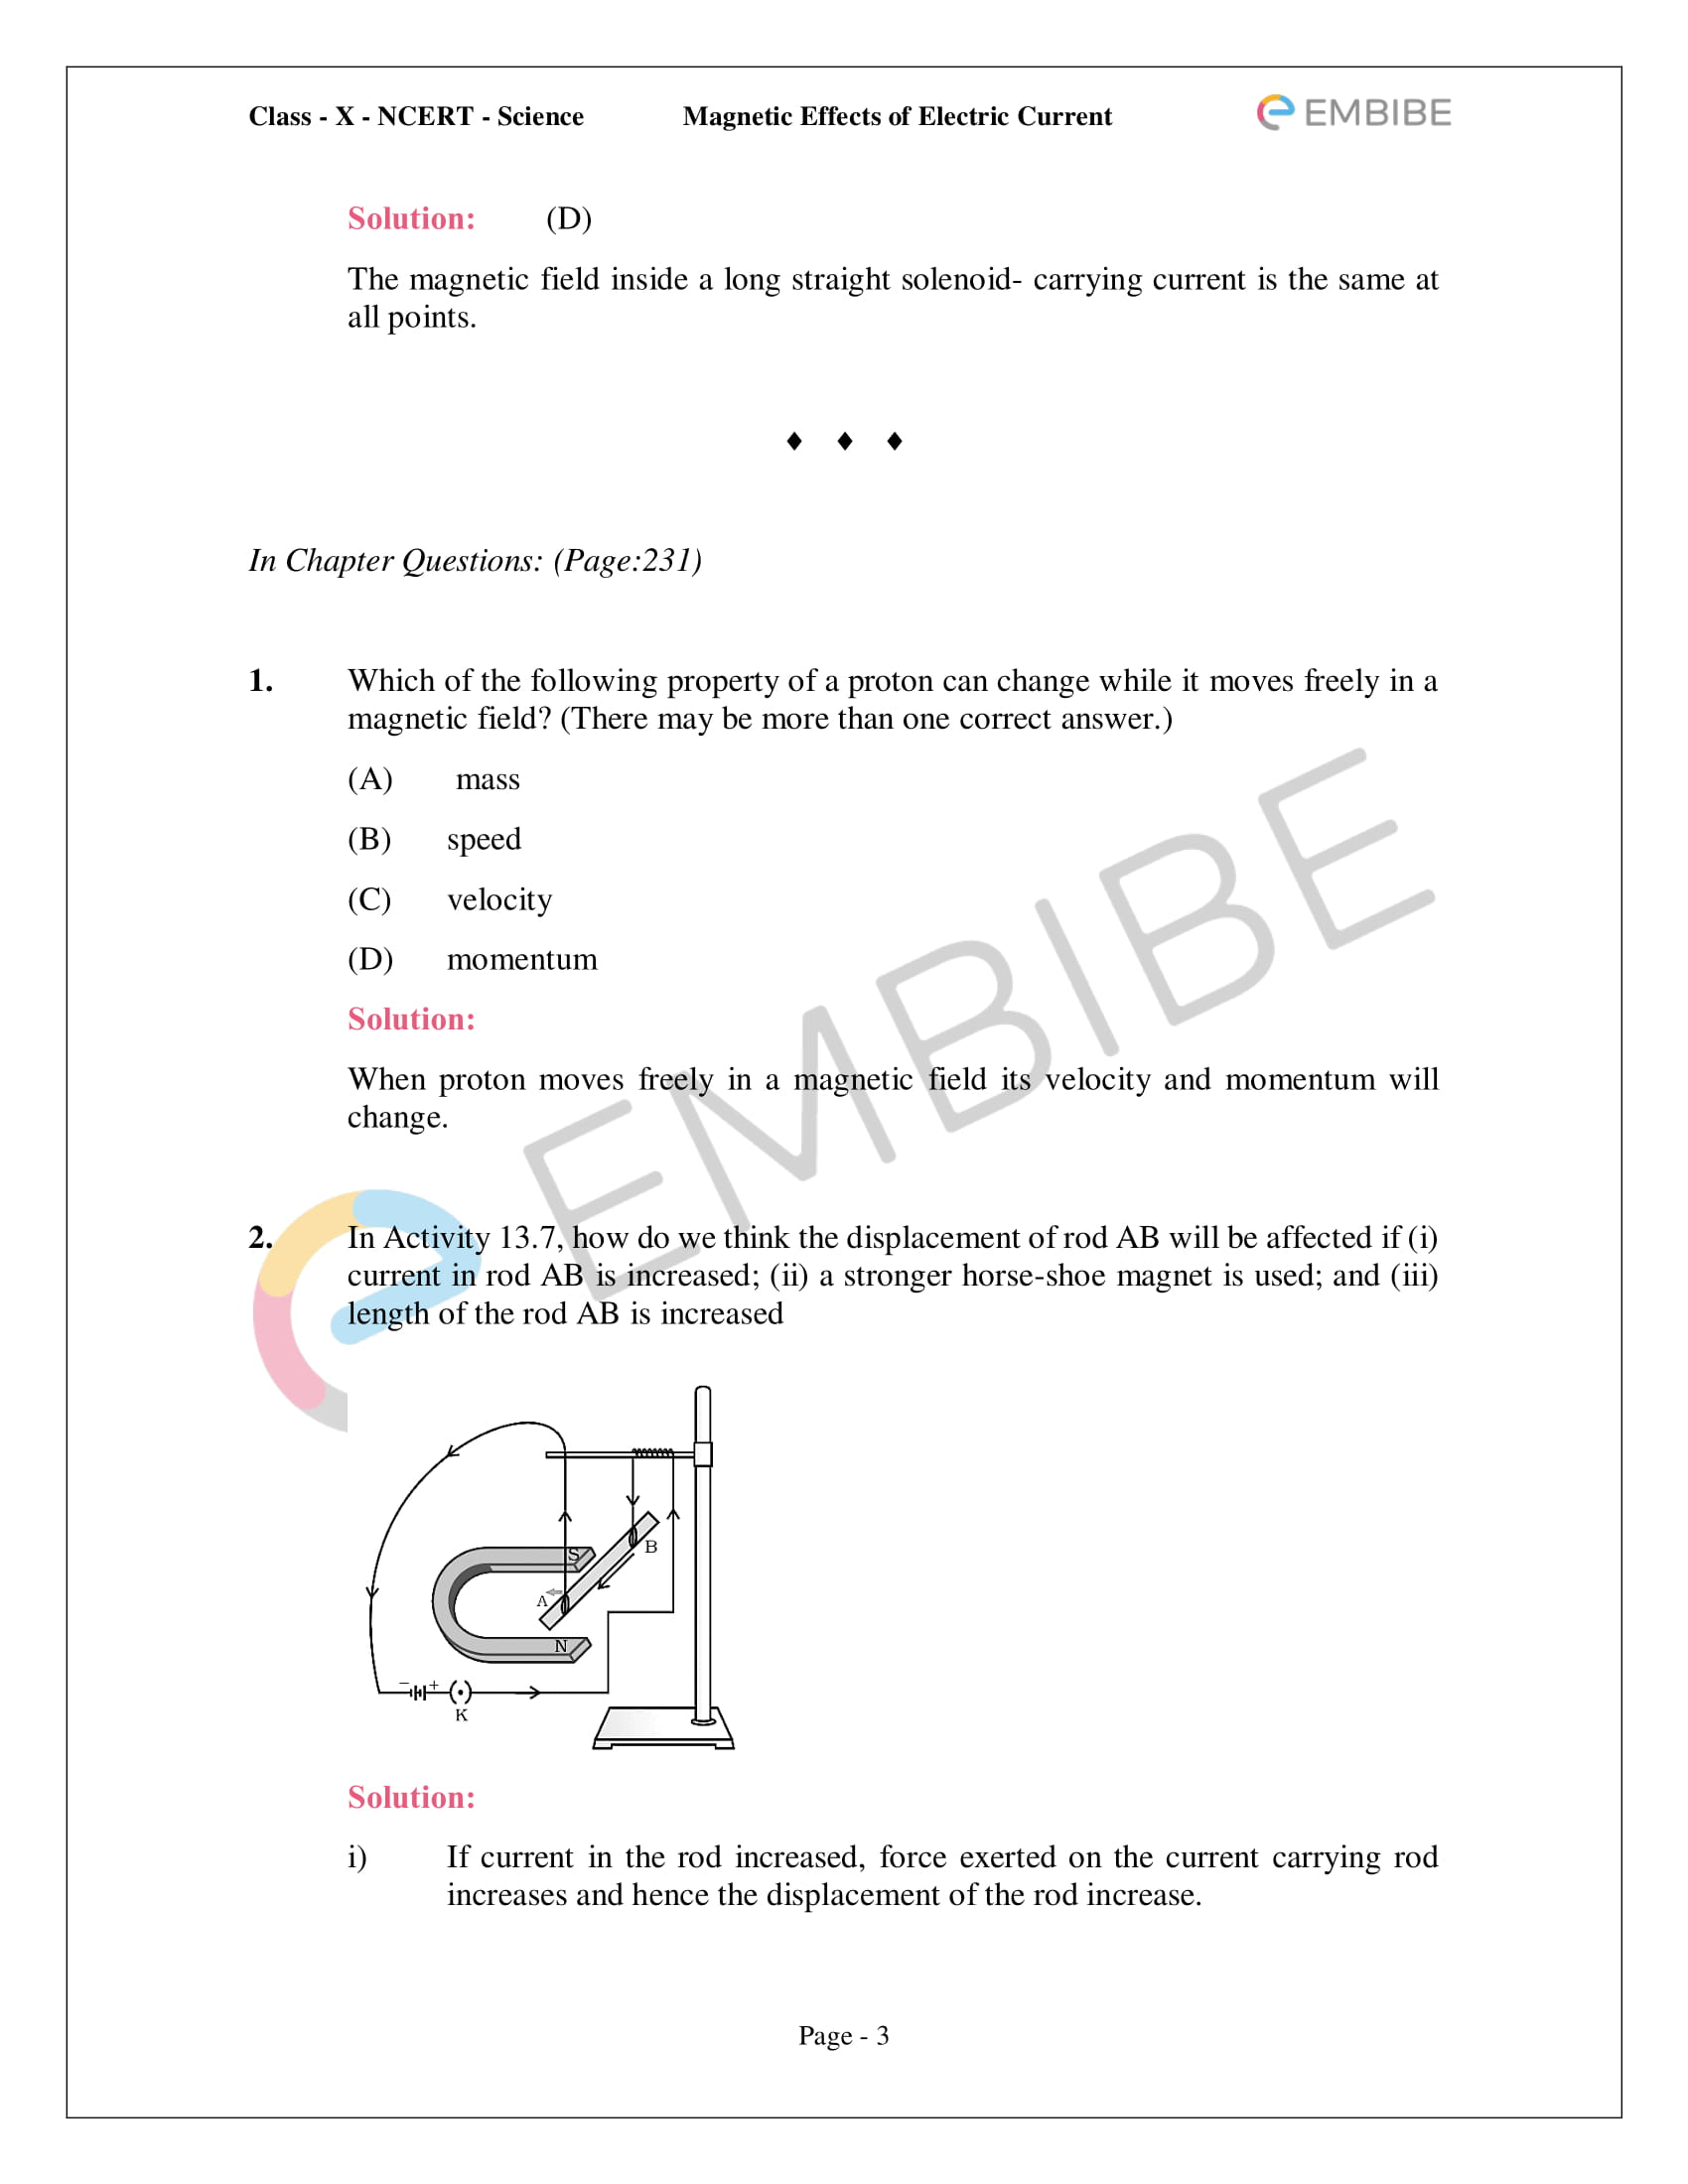 CBSE NCERT Solutions For Class 10 Science Chapter 13 - Magnetic Effects of Electric Current - 3